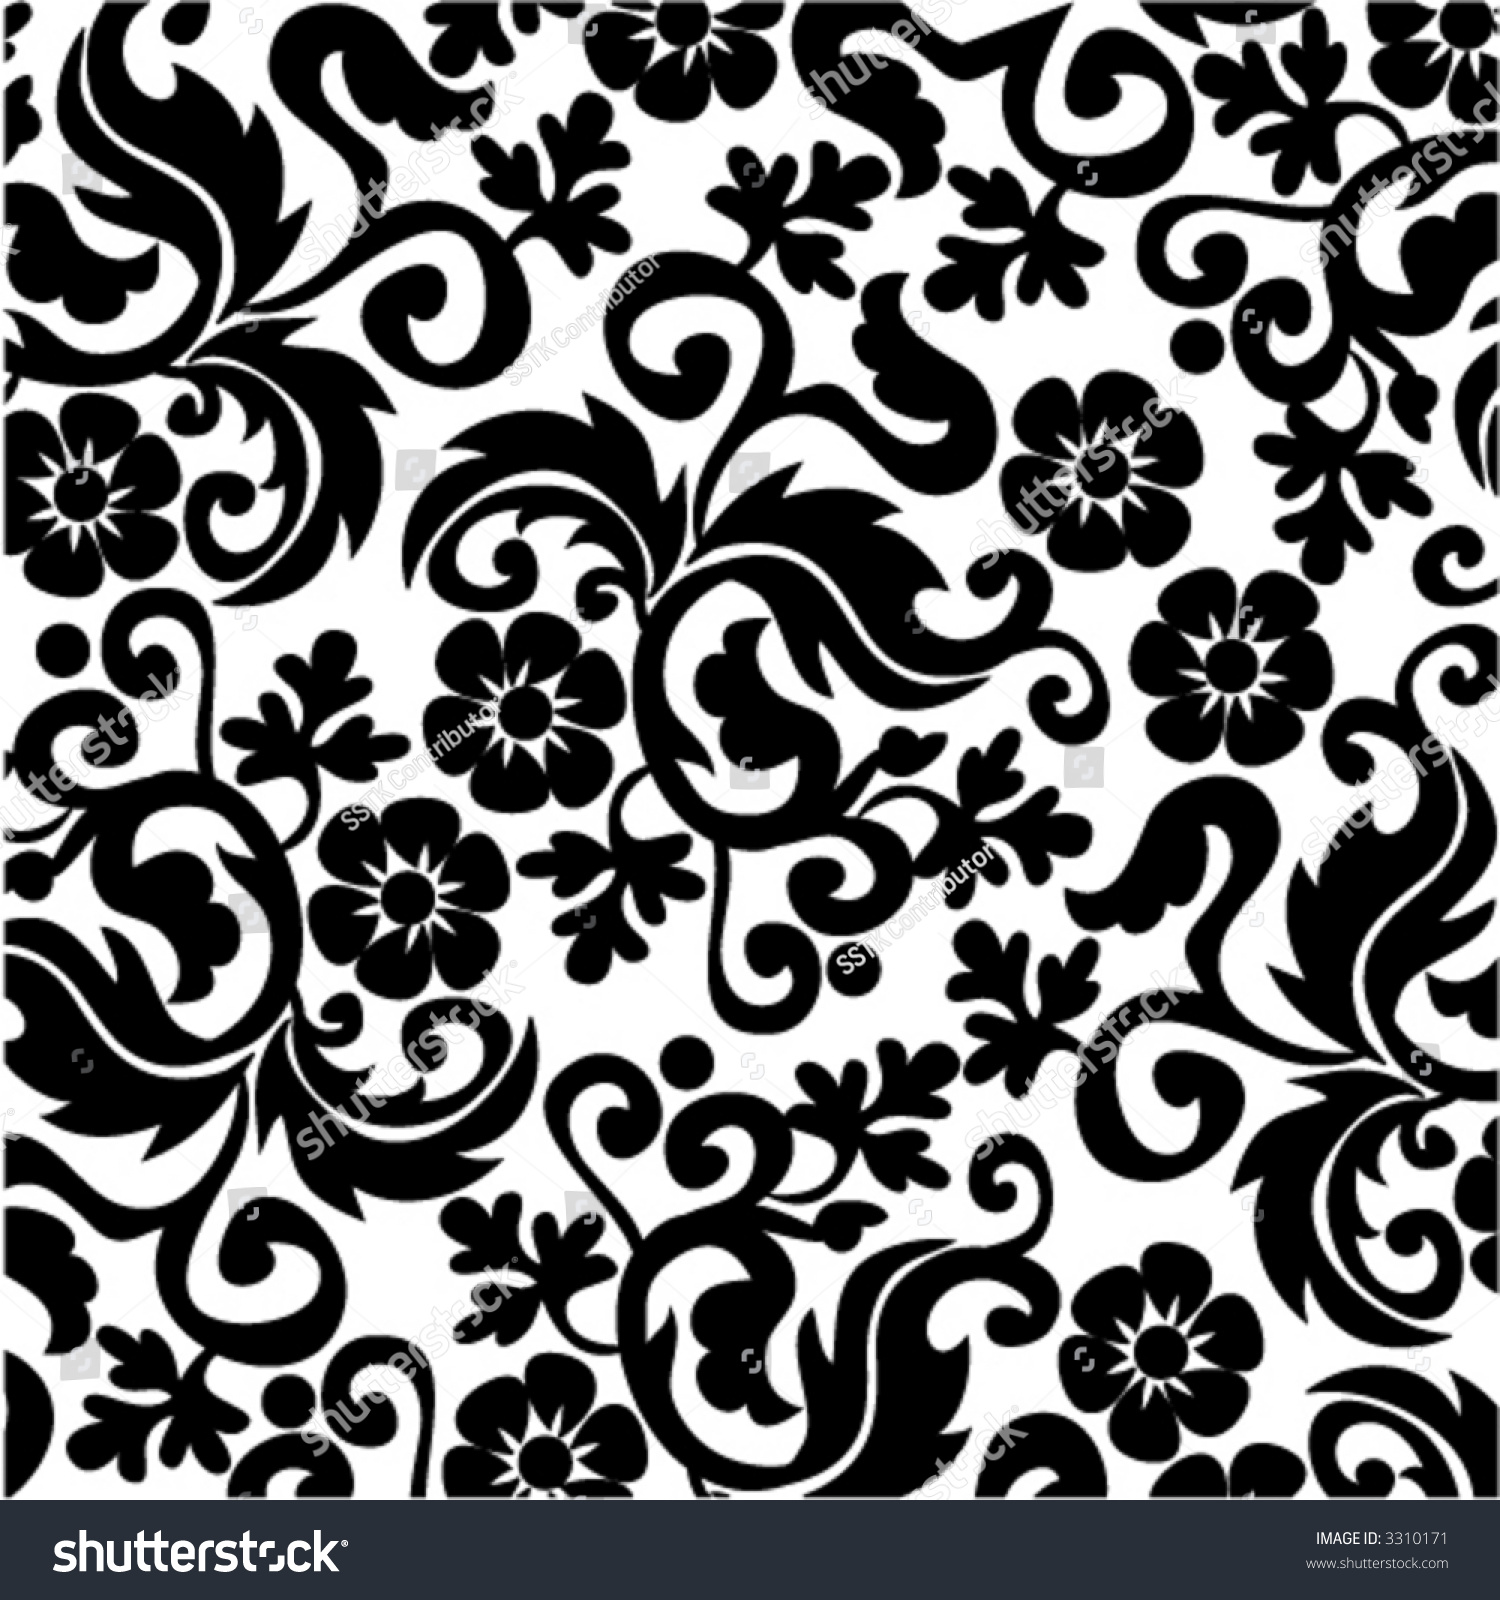 royal scroll pattern vol black 01 stock vector royalty free